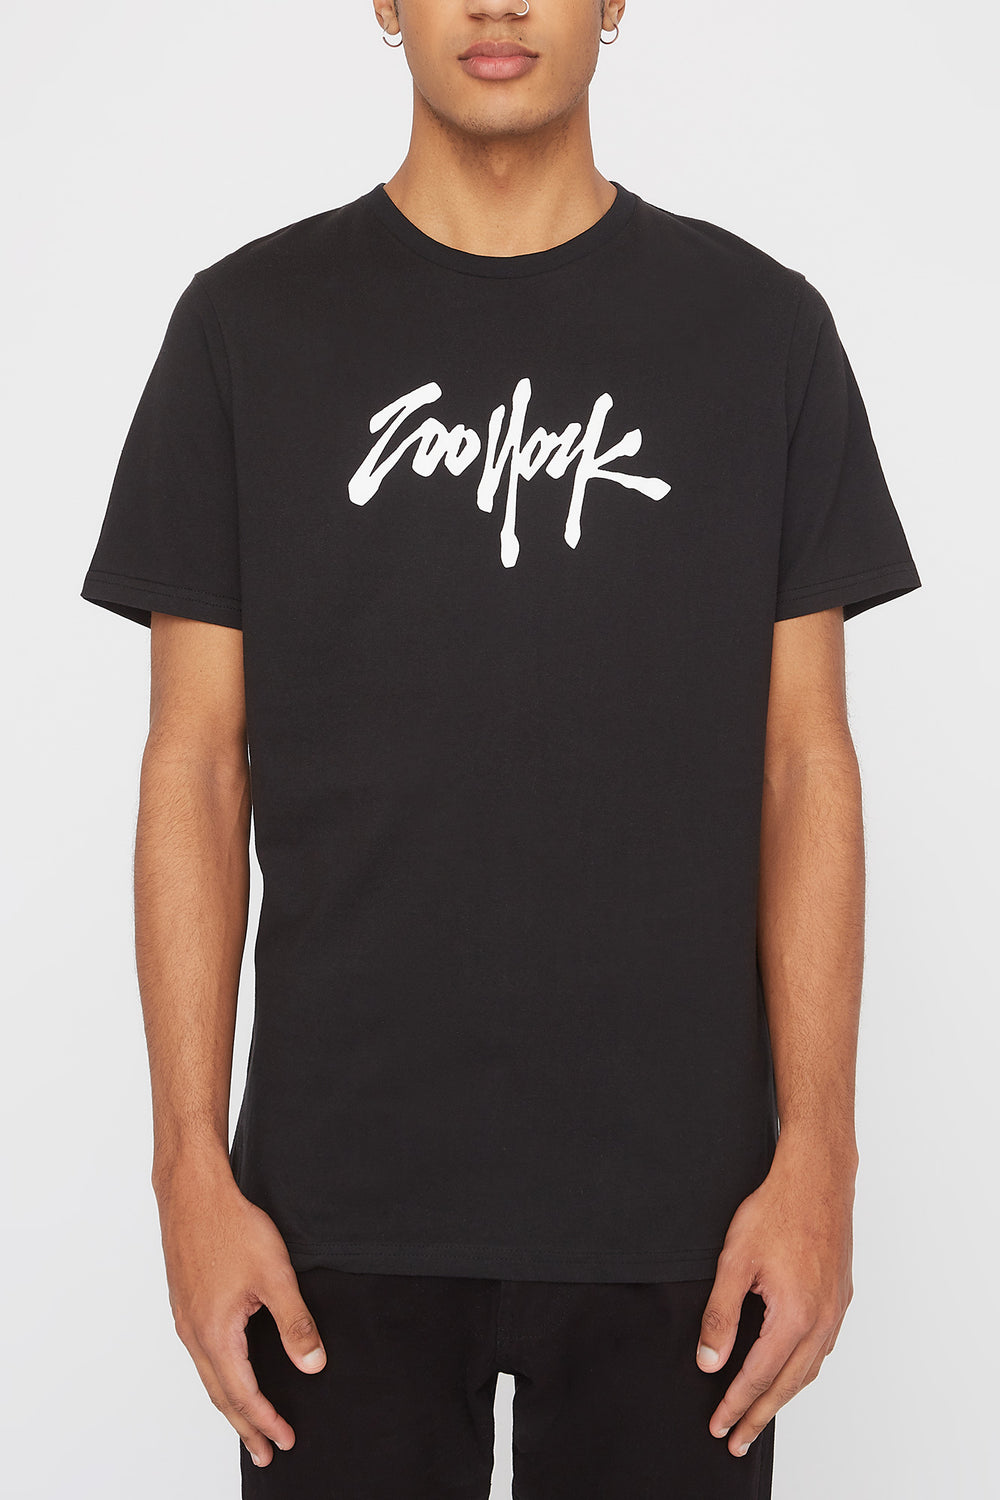 T-Shirt Quartiers NYC Zoo York Homme Noir